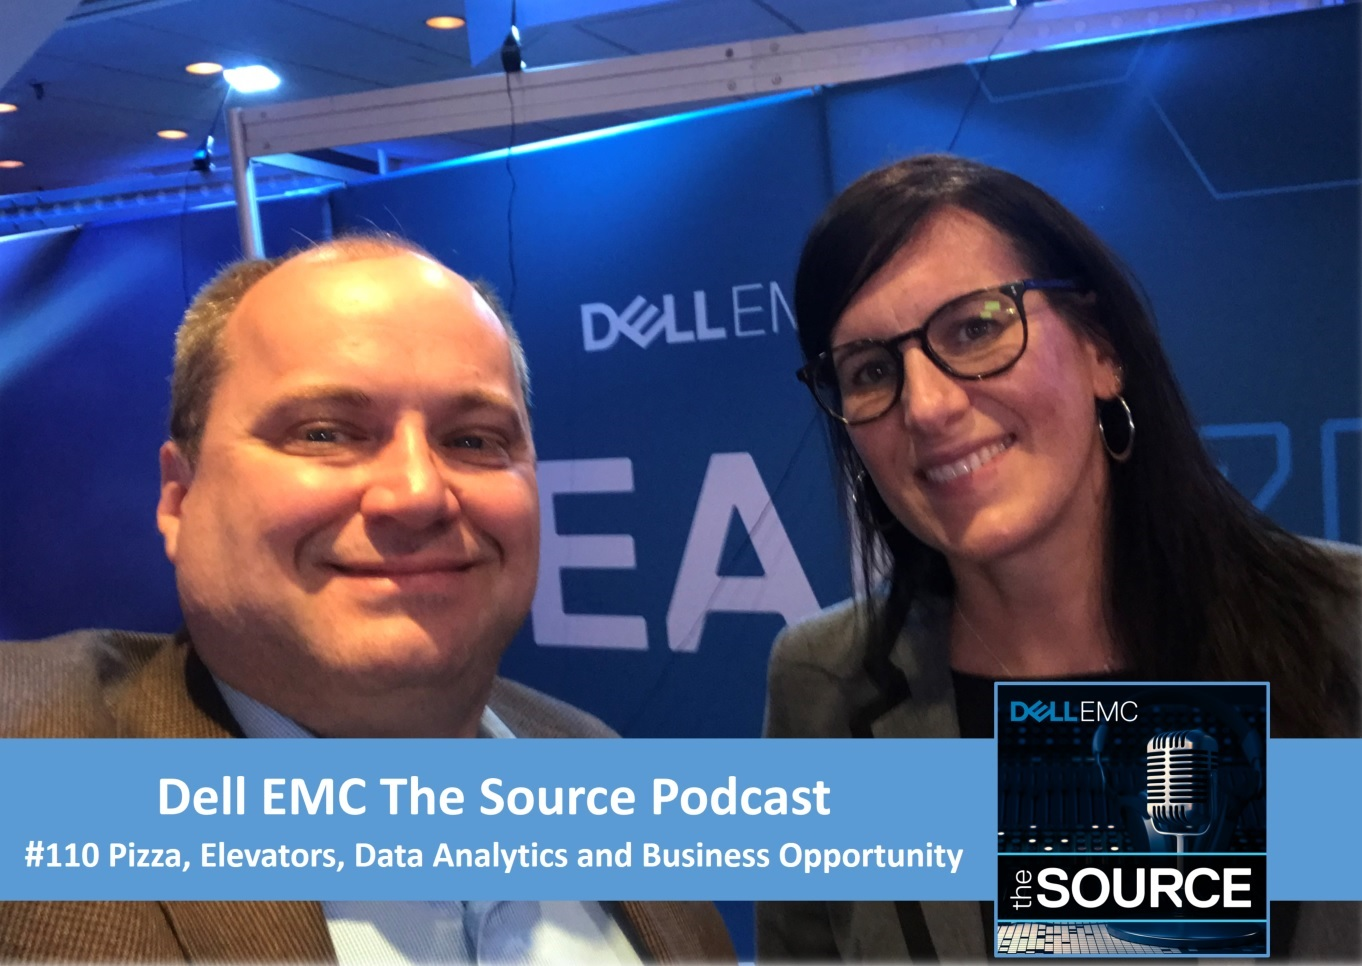 Dell EMC The Sourec Podcast #110: Data Analytics